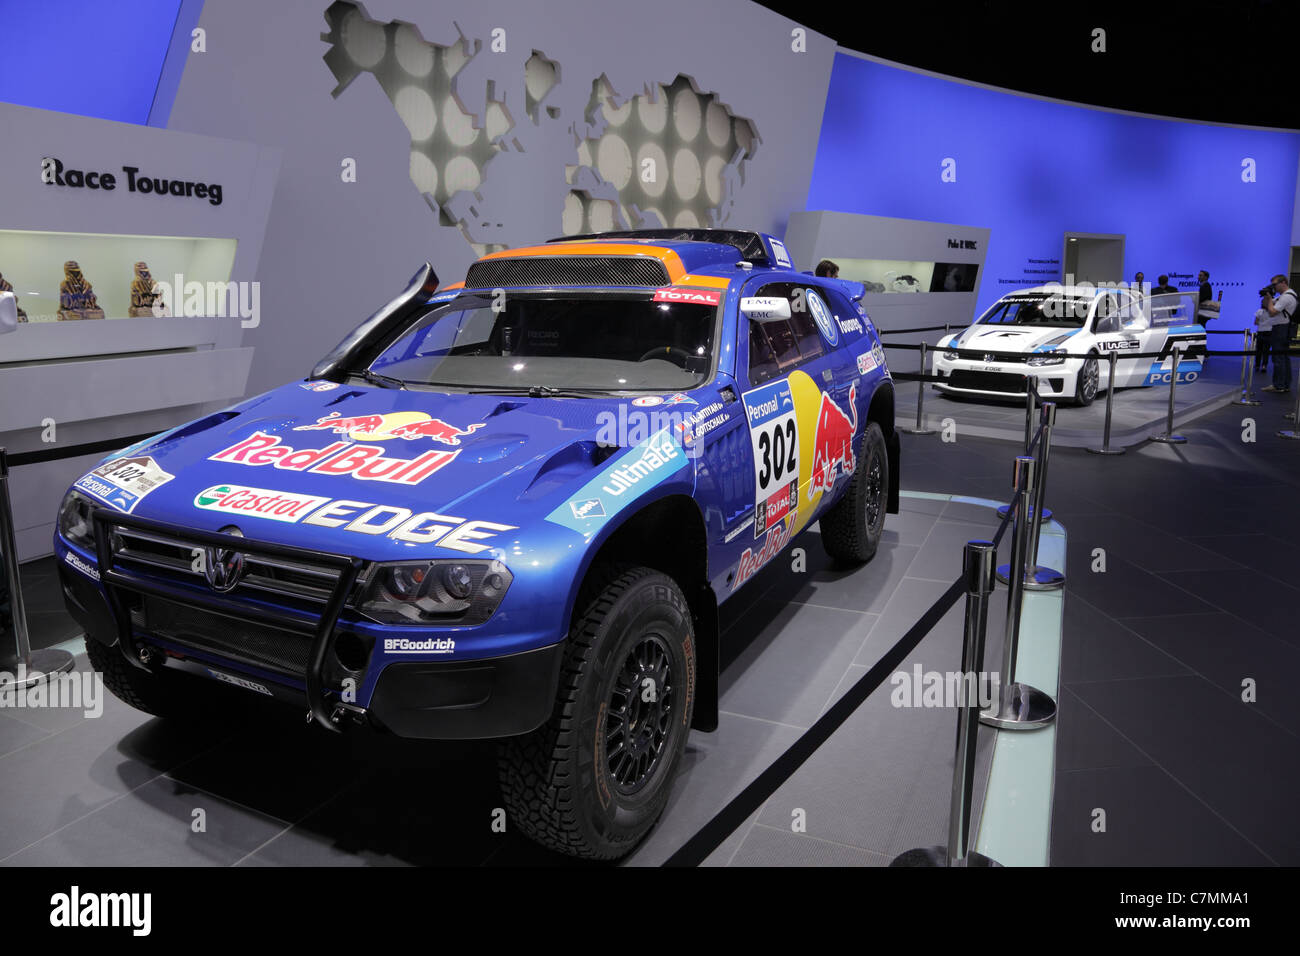 The VW Race Touareg at the 64th IAA (Internationale Automobil Ausstellung) on September 24, 2011 in Frankfurt - Stock Image